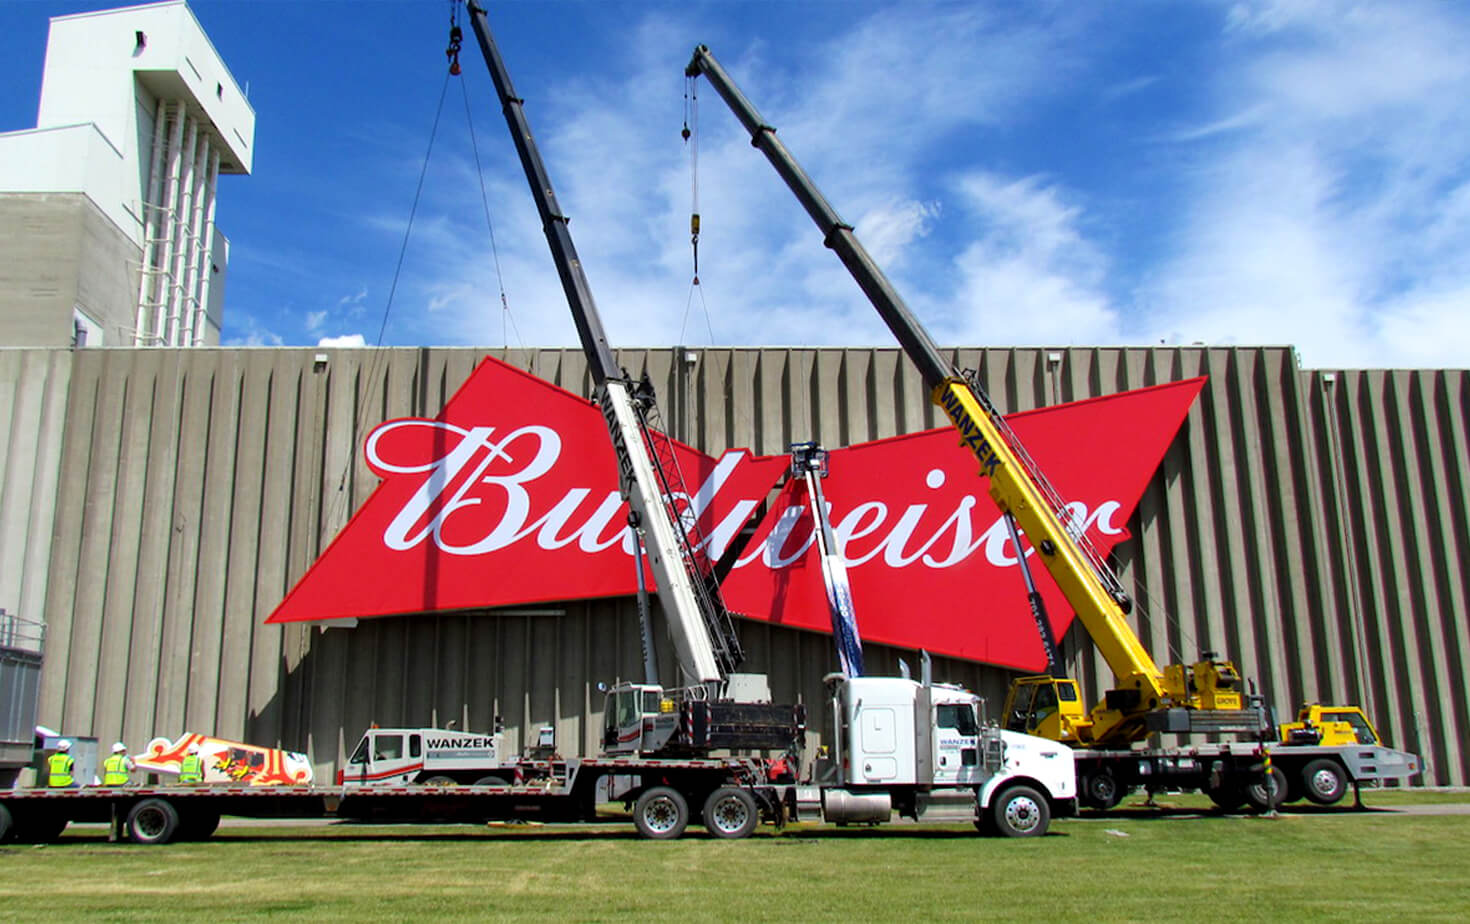 Budweiser Moorhead MN Largescale Wall Sign Install on Side of Building